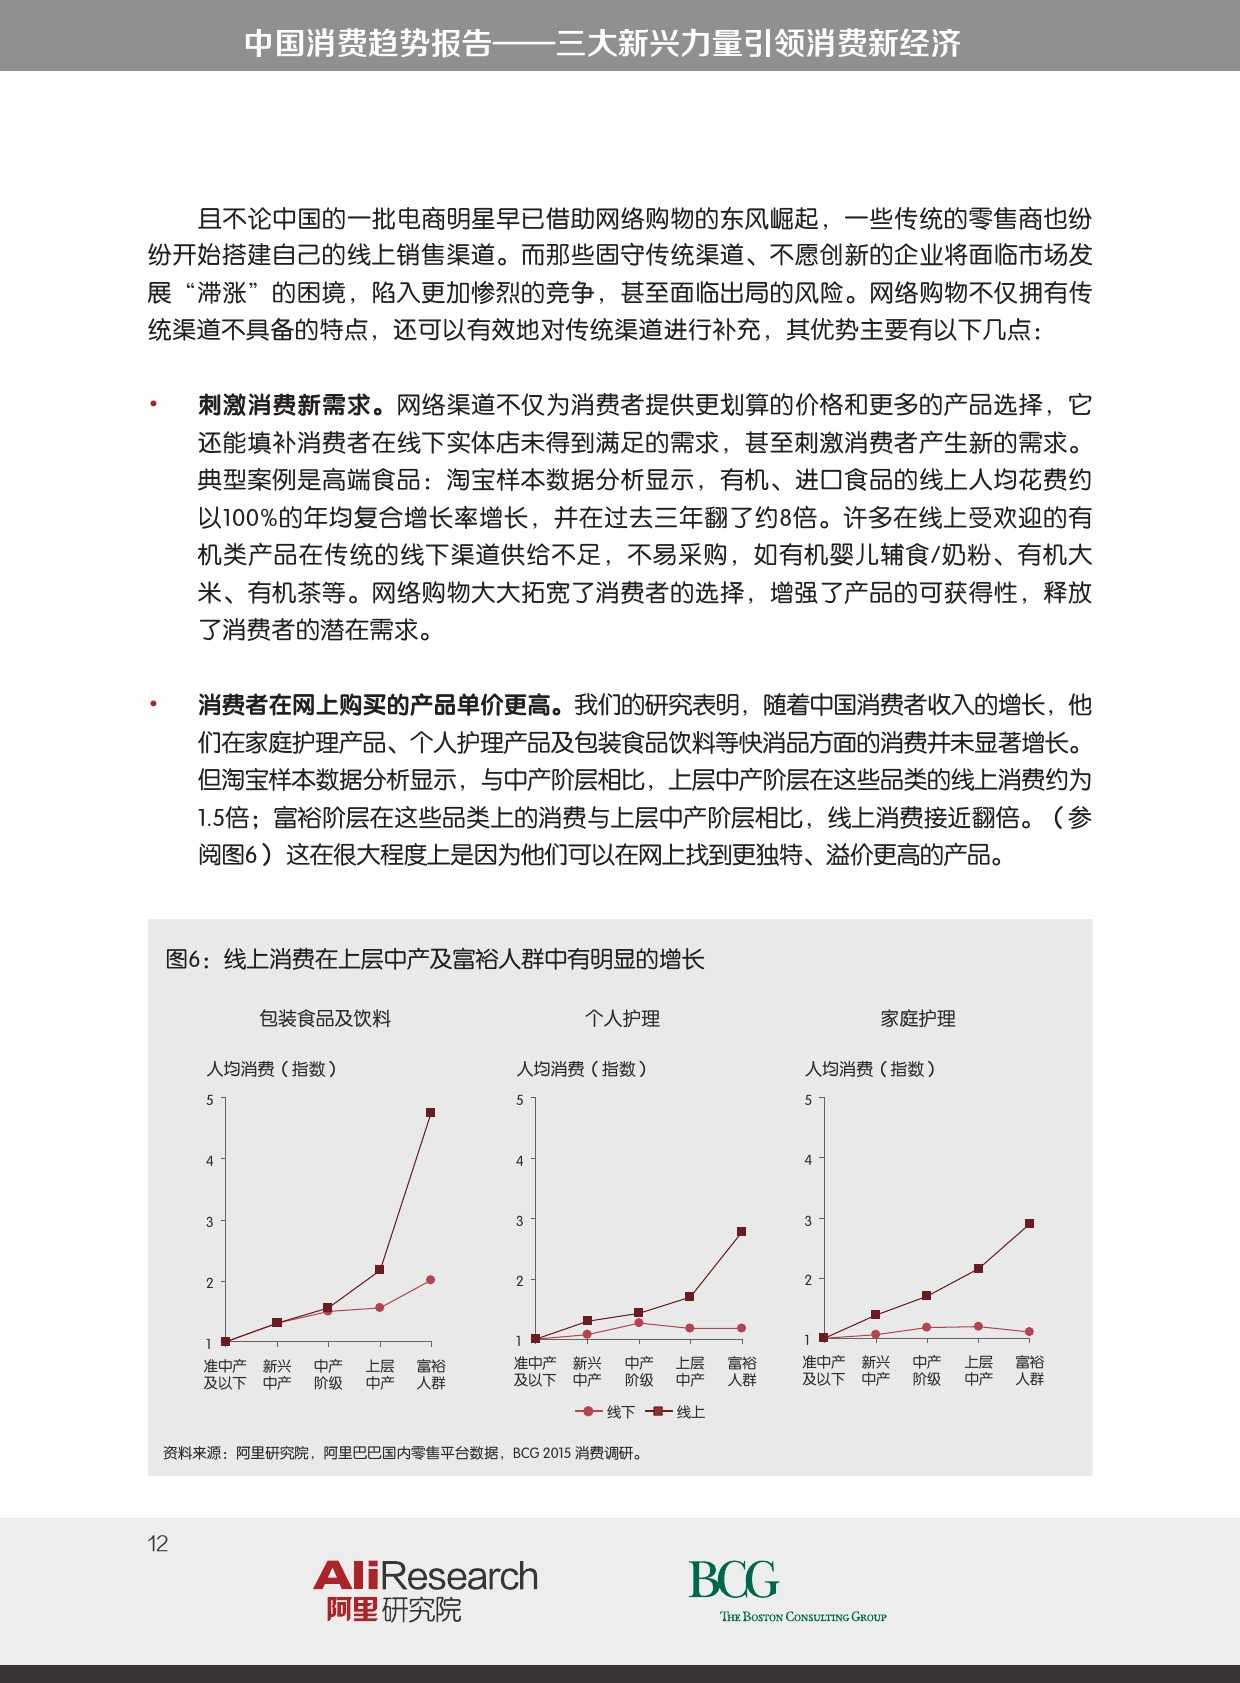 BCG_The_New_China_Playbook_Dec_2015_CHN_000012